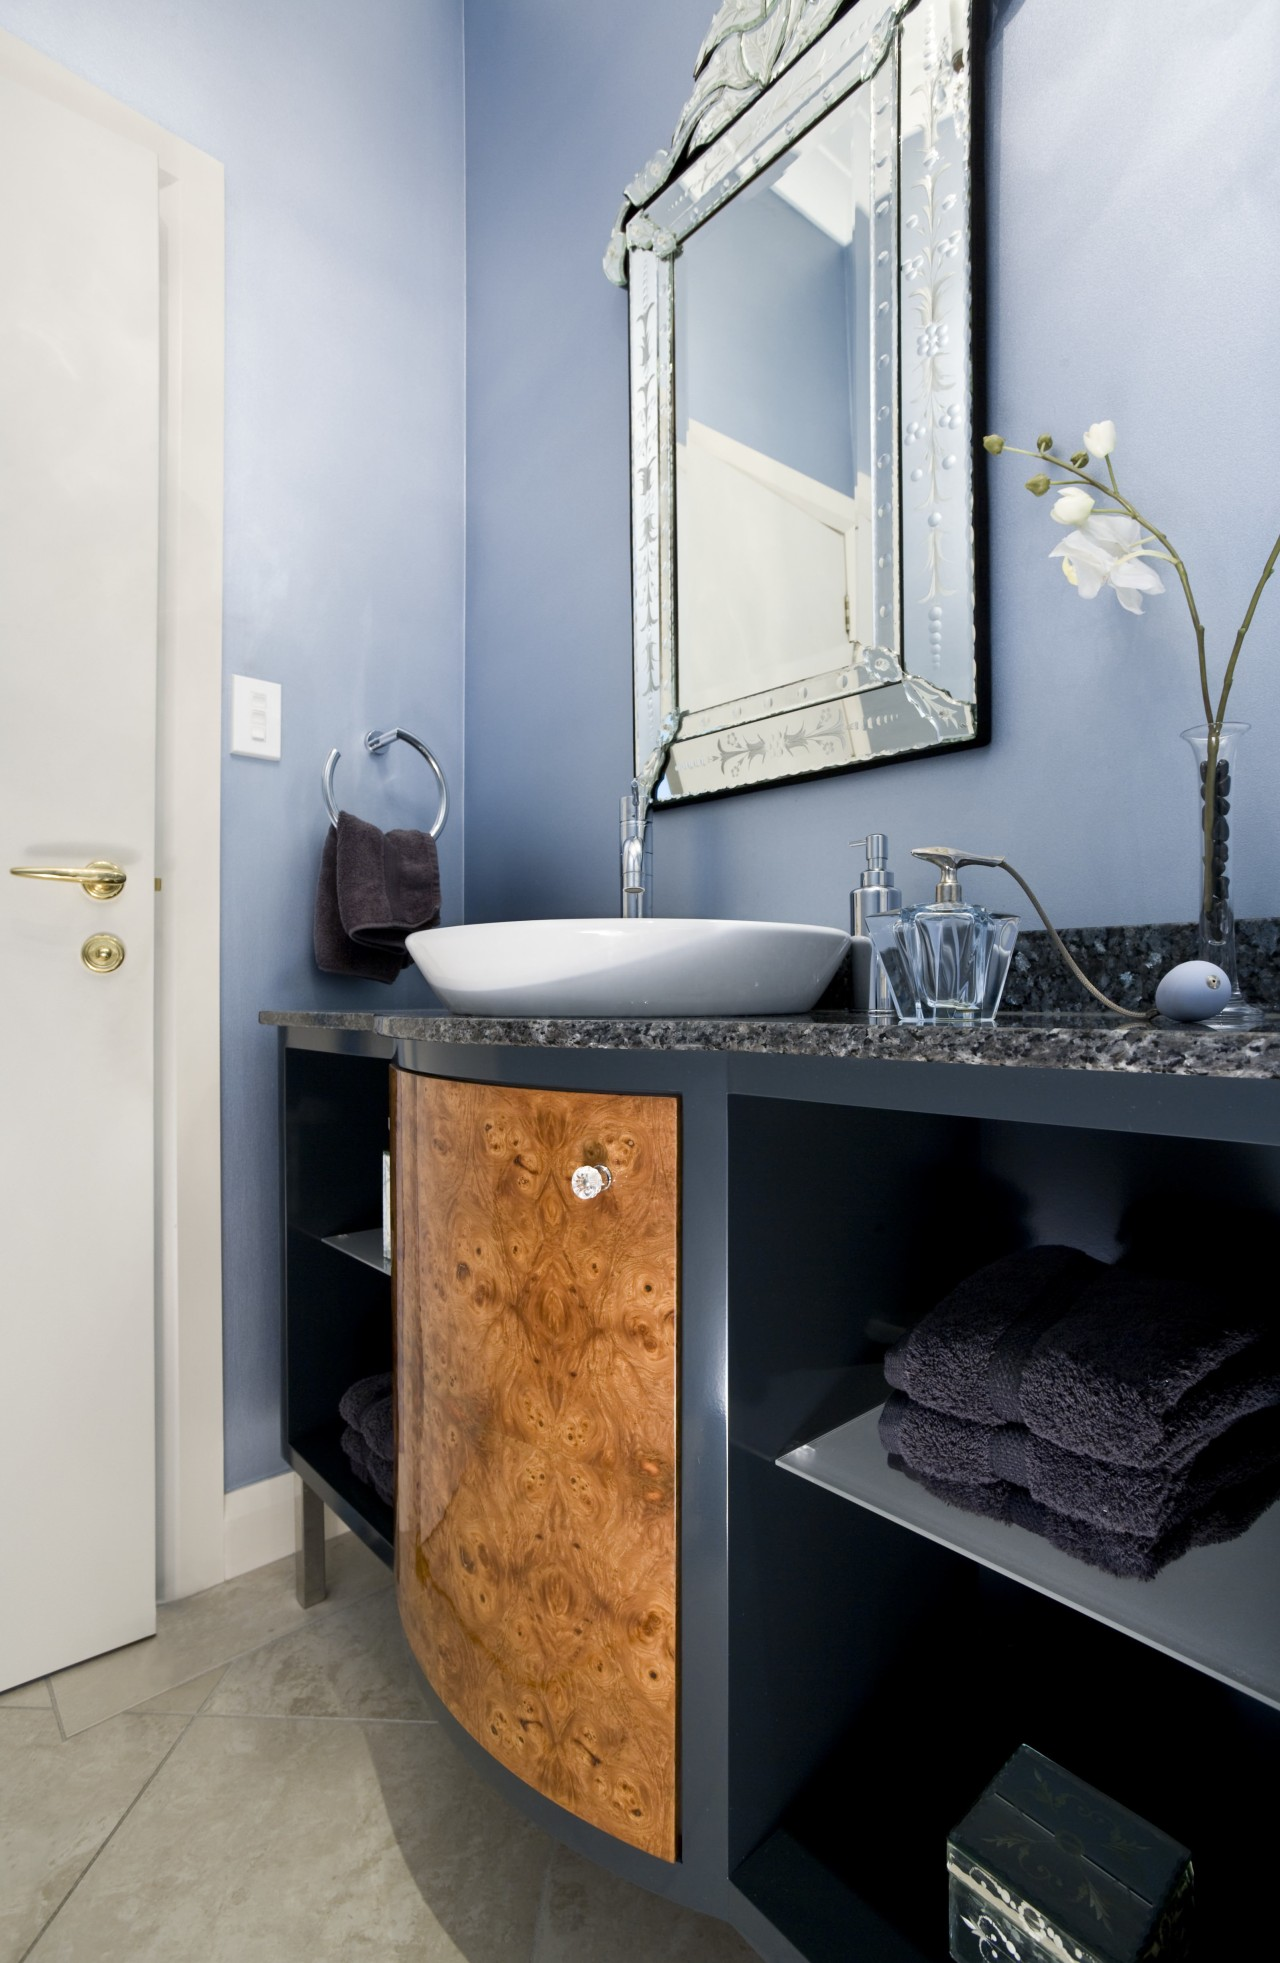 View of a powder room featuring blue painted bathroom, bathroom accessory, bathroom cabinet, cabinetry, countertop, interior design, room, sink, gray, black